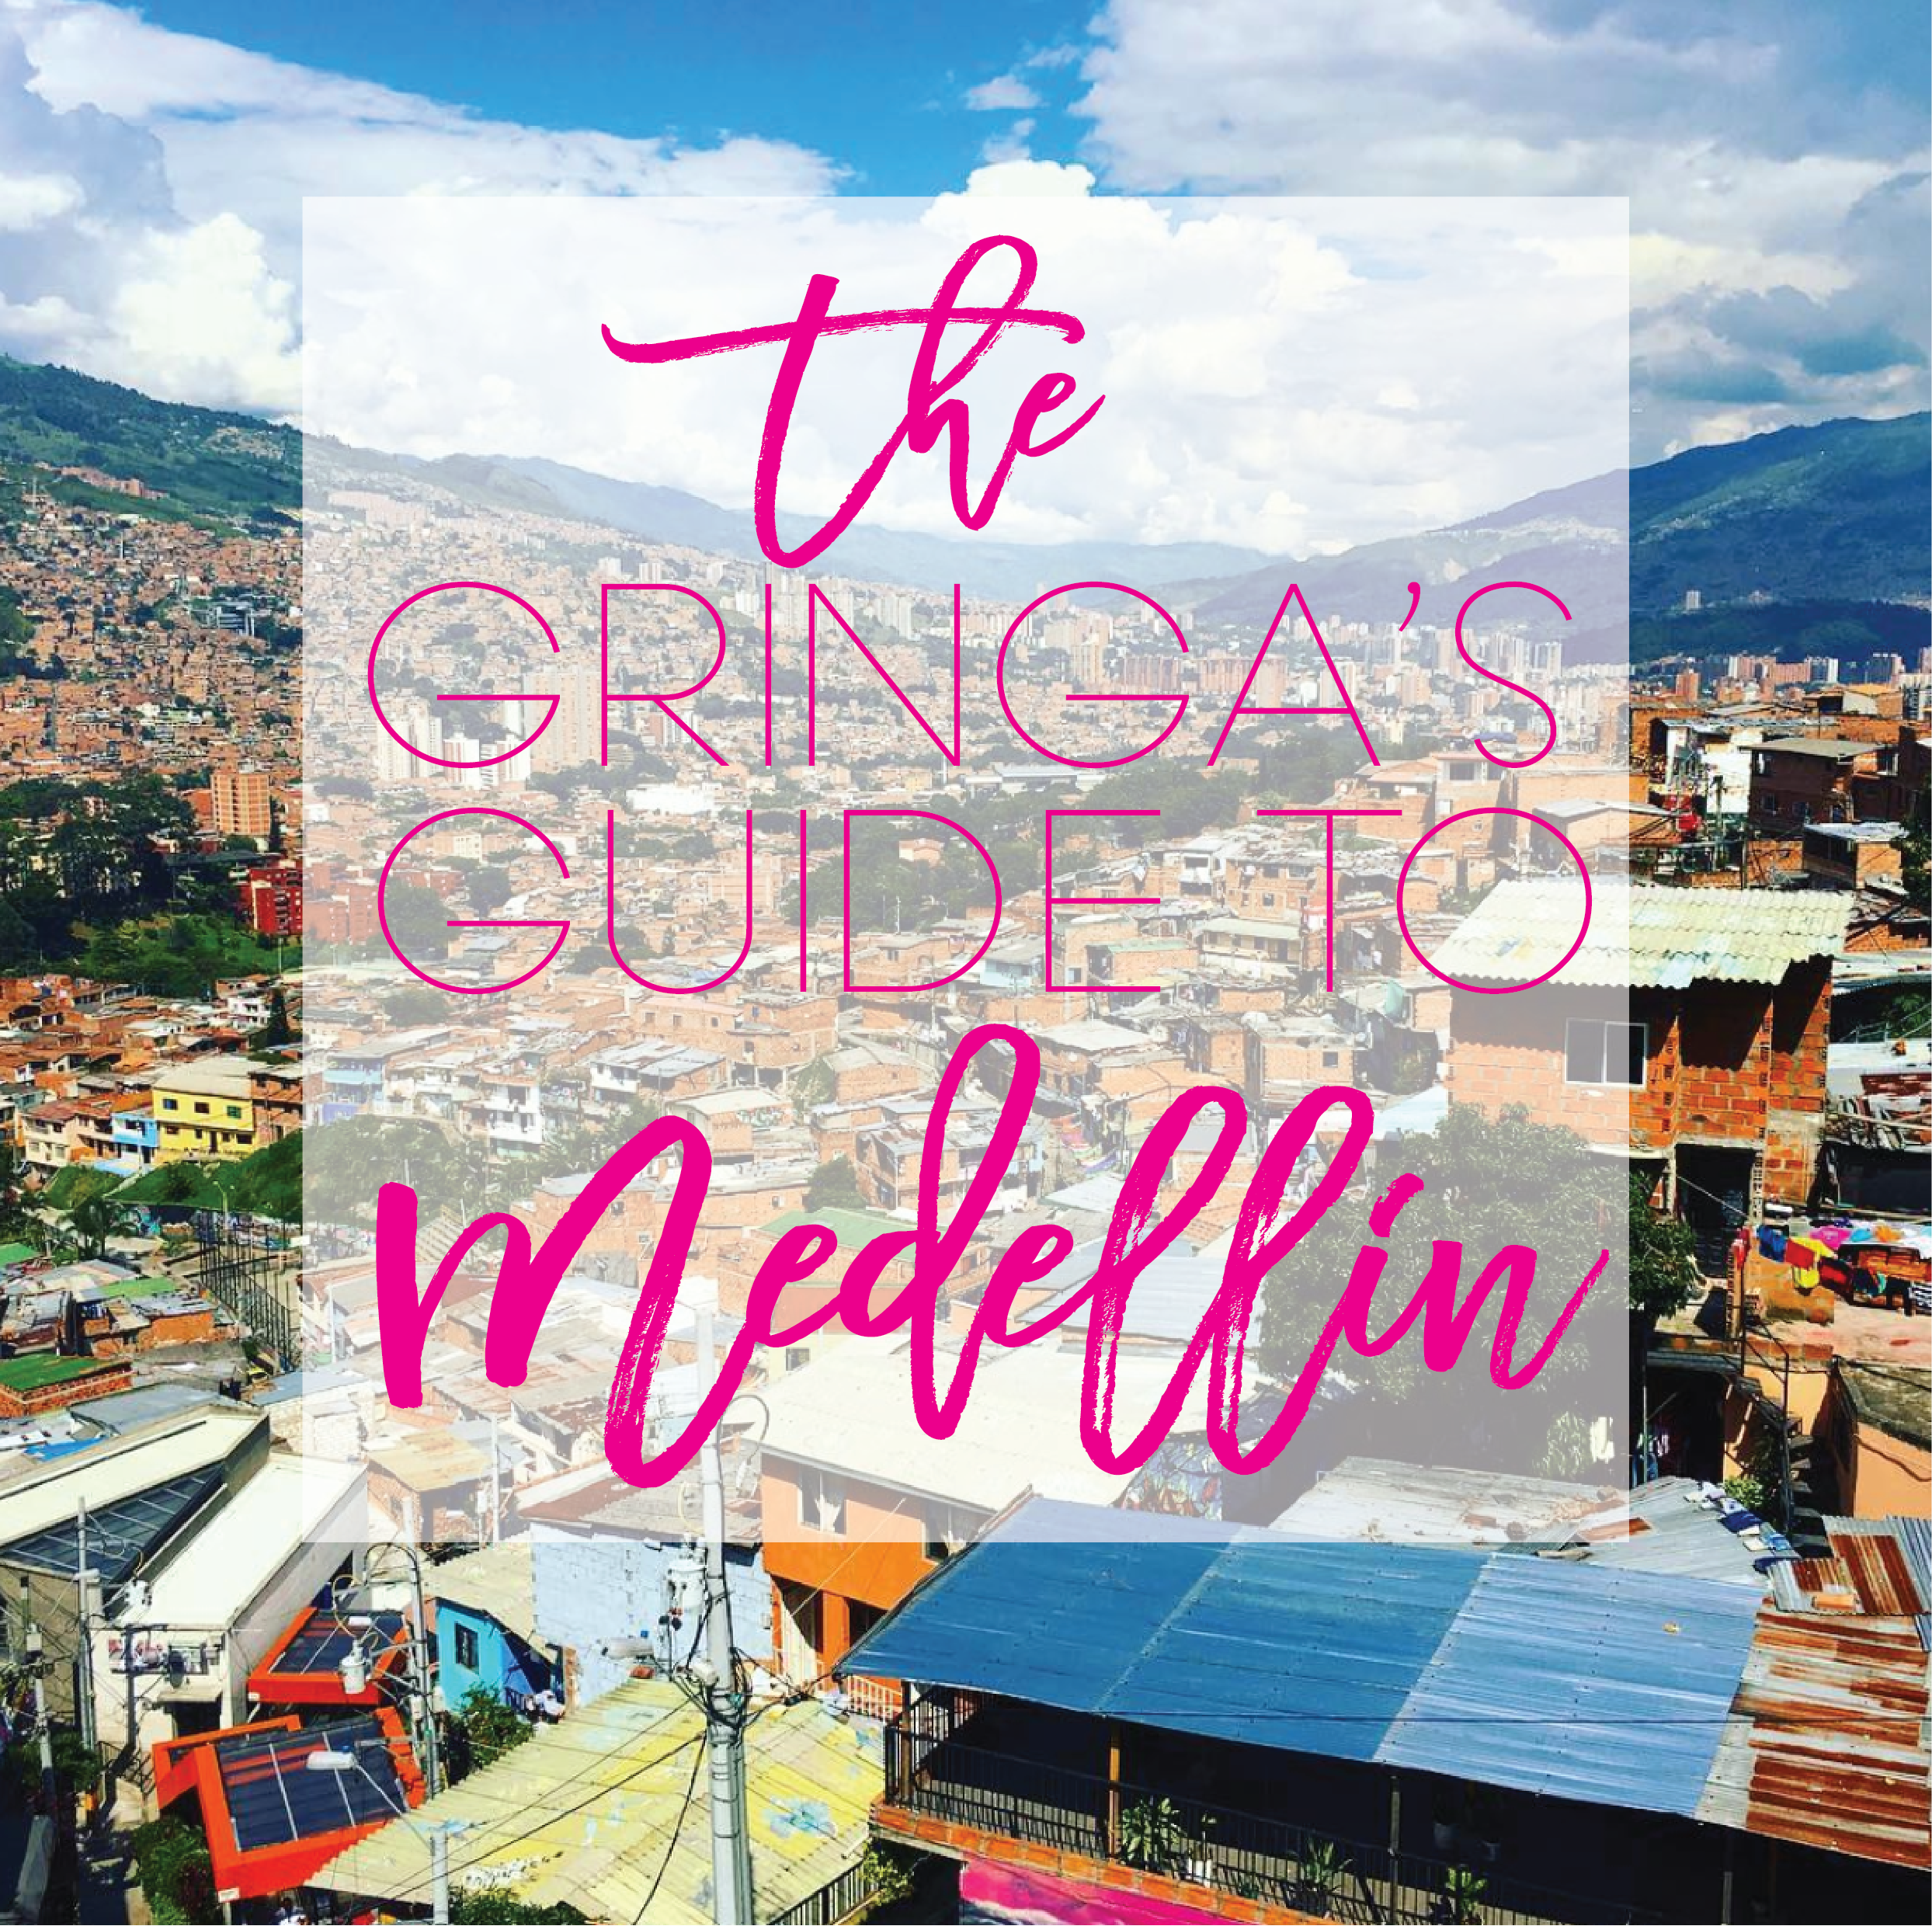 Sex tourism places in medellin